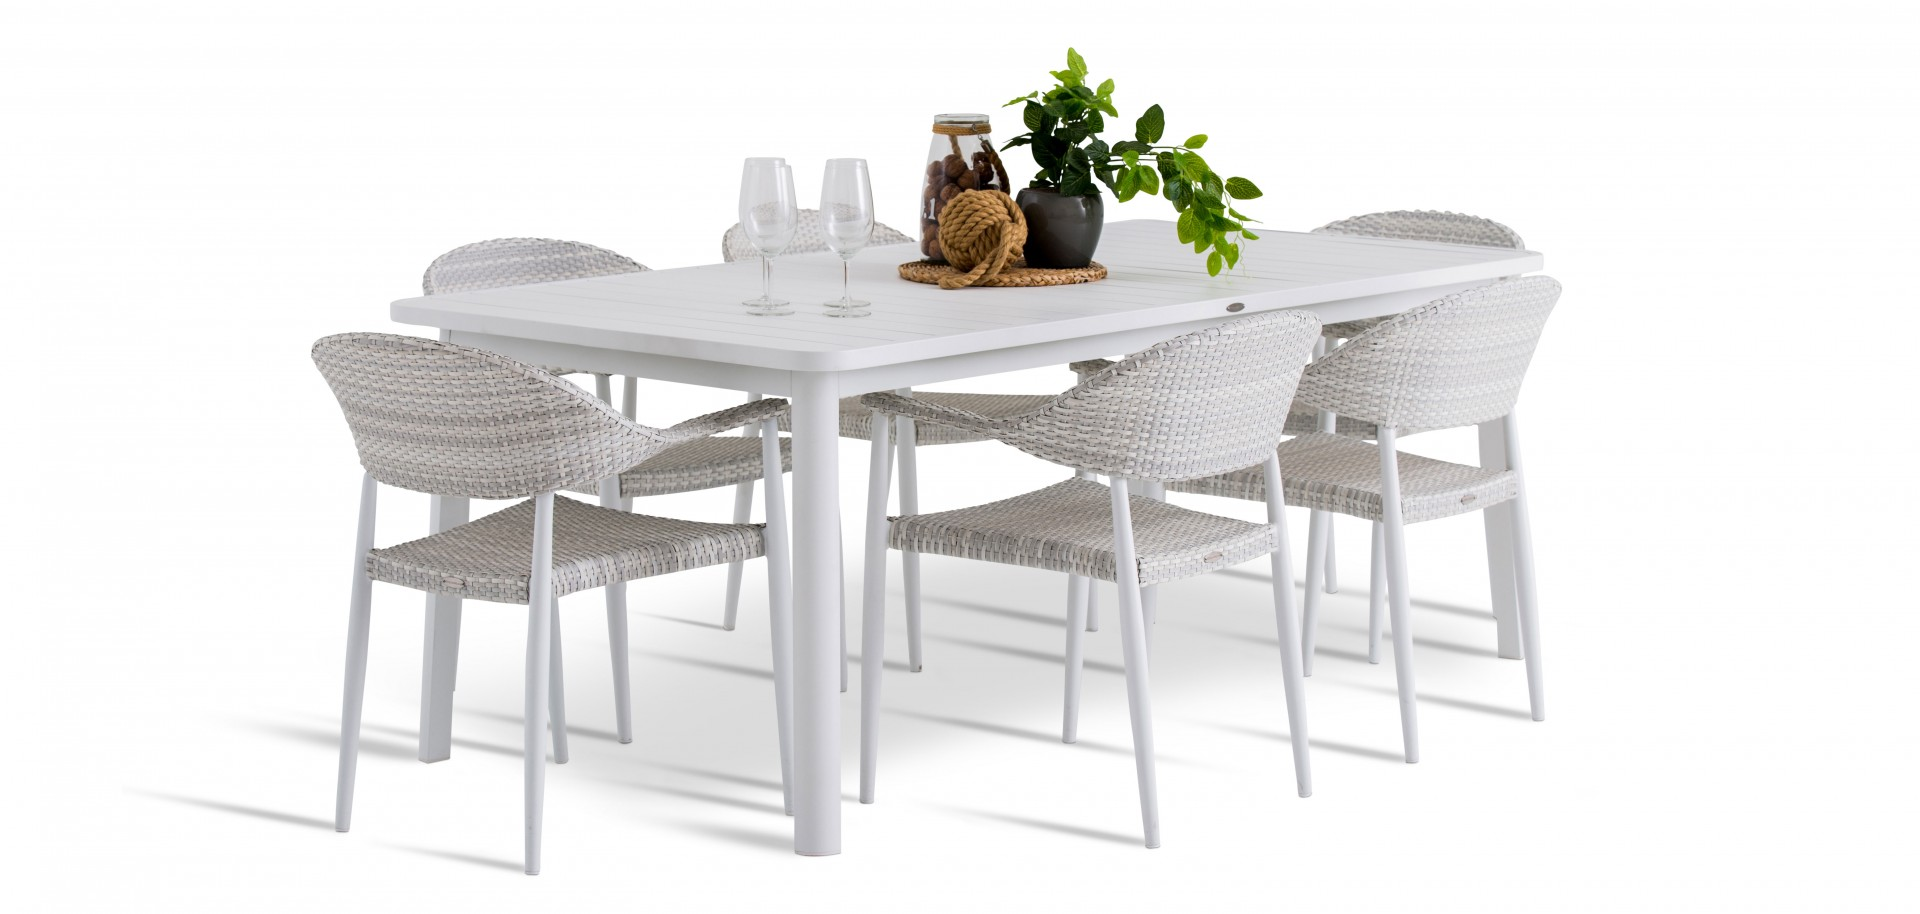 Rio Outdoor Chairs with White Table